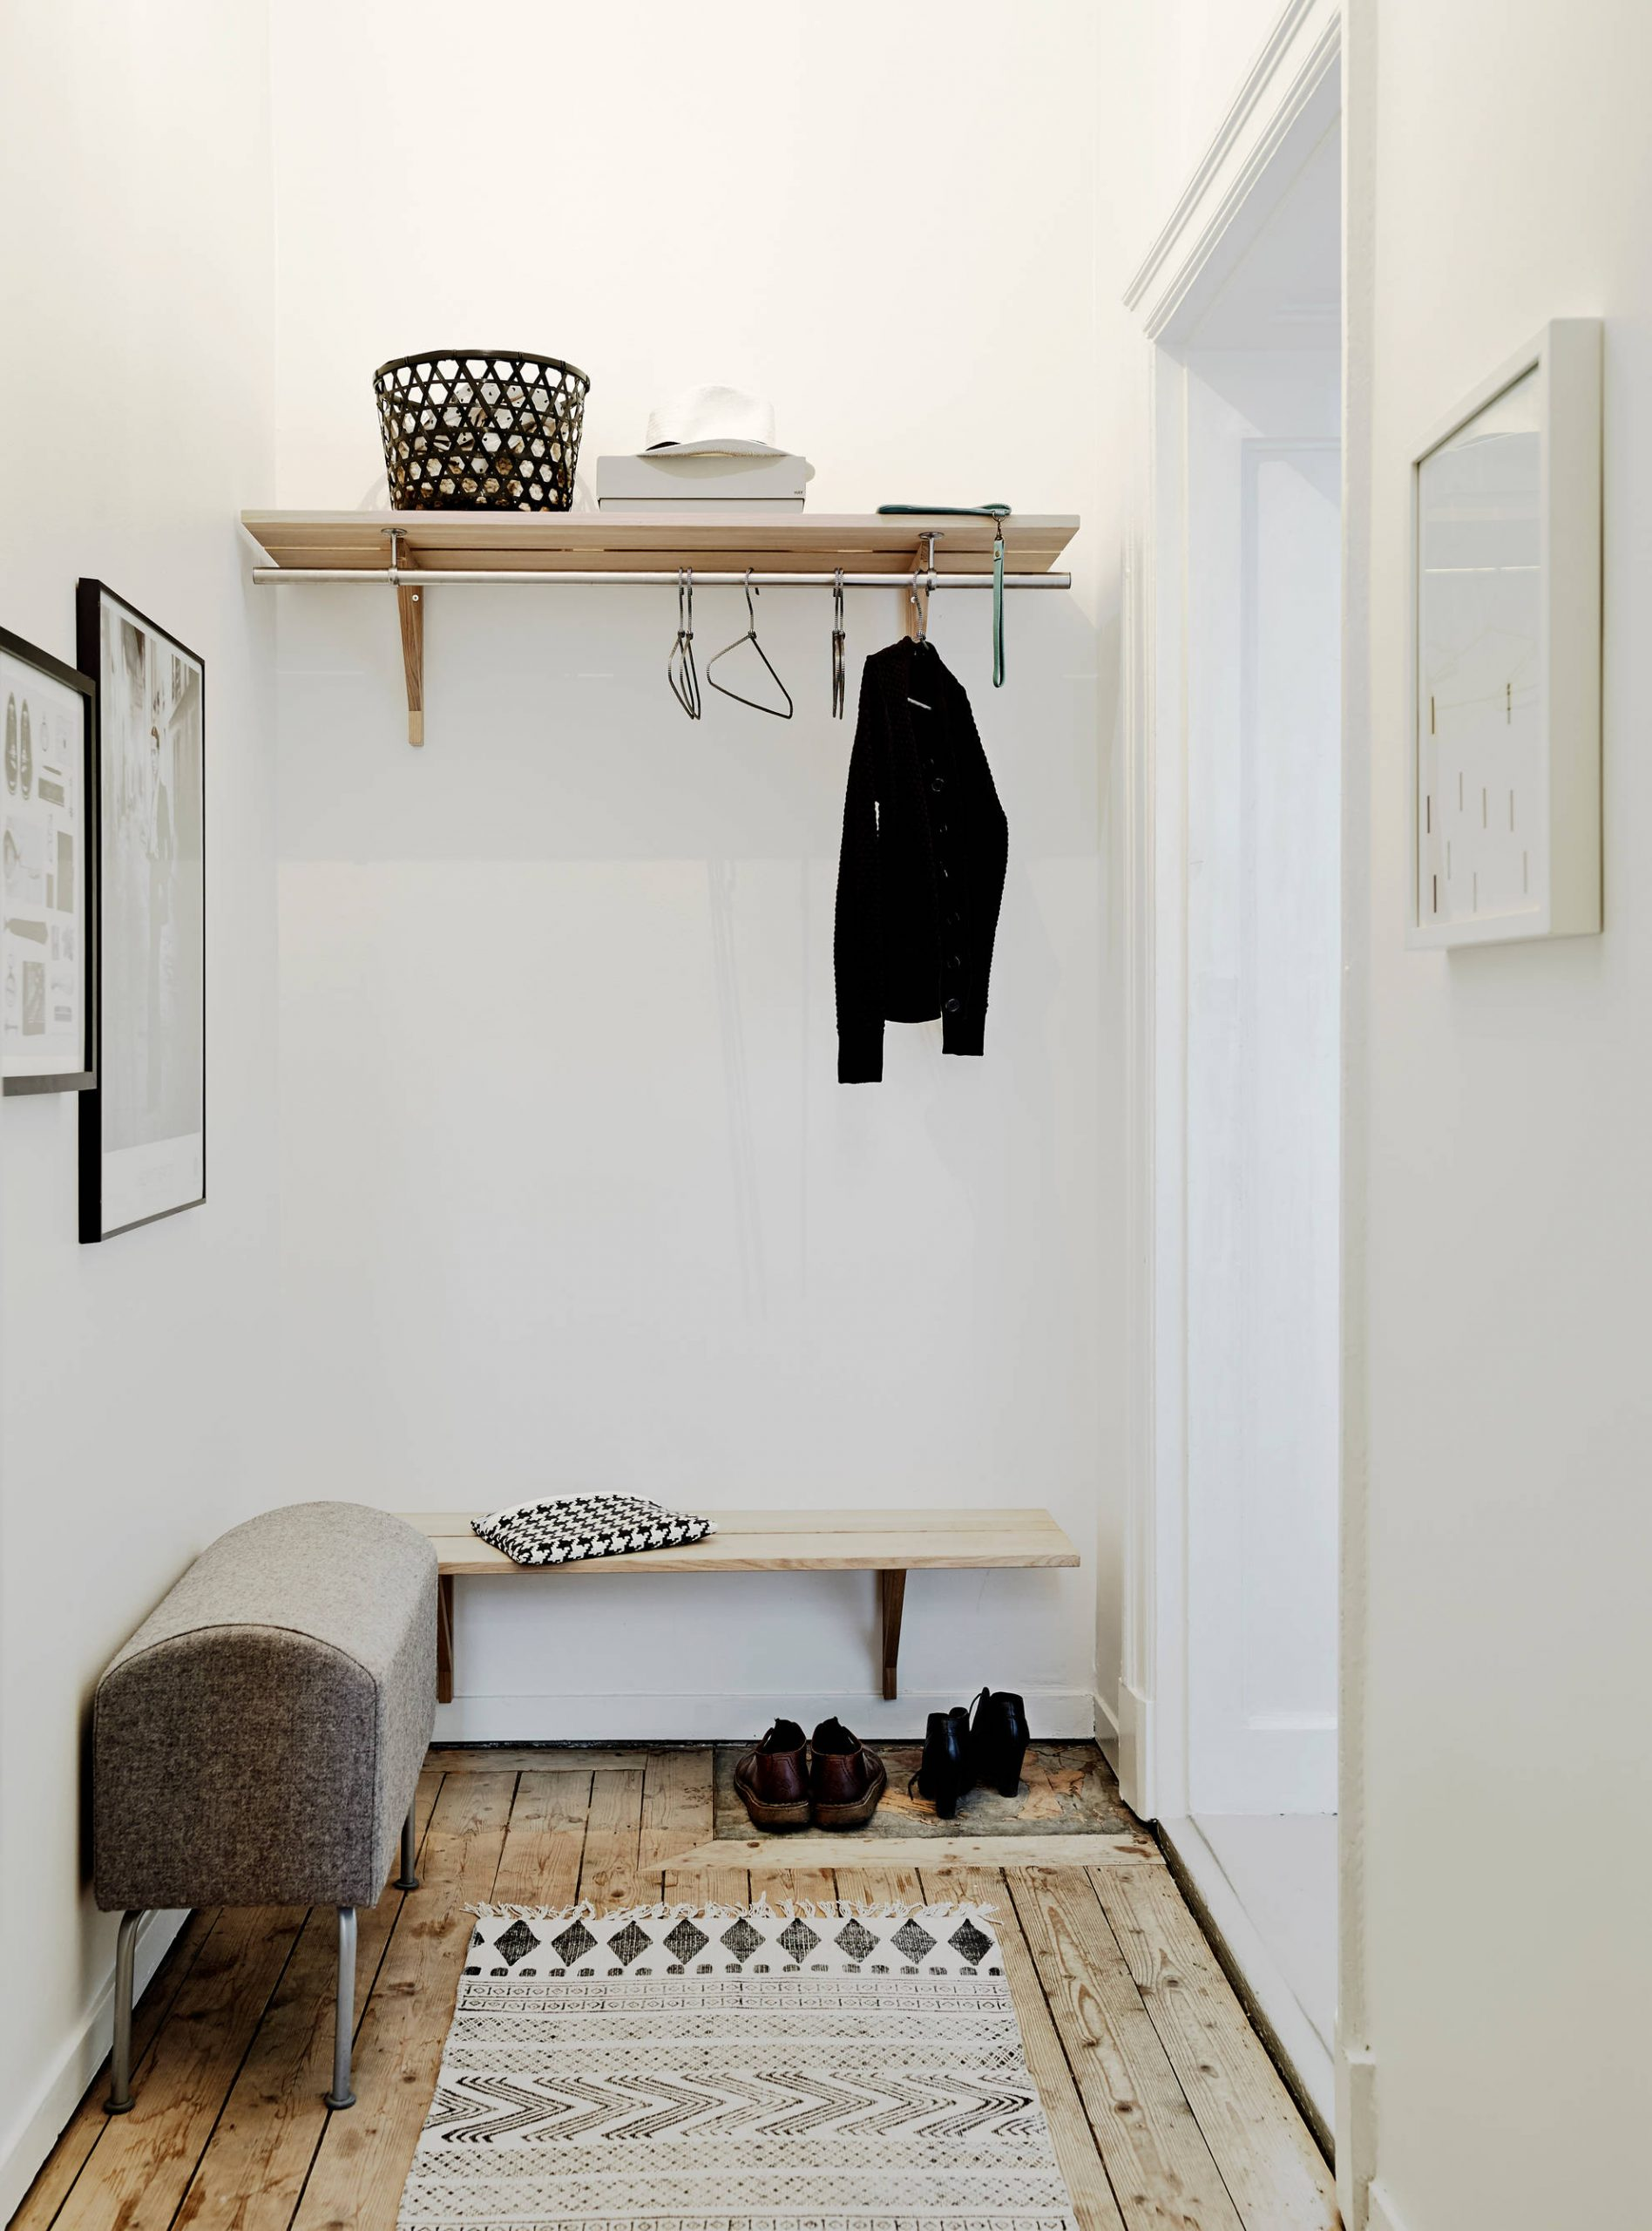 Ambiance cocooning planete deco a homes world for Appartement deco cocooning